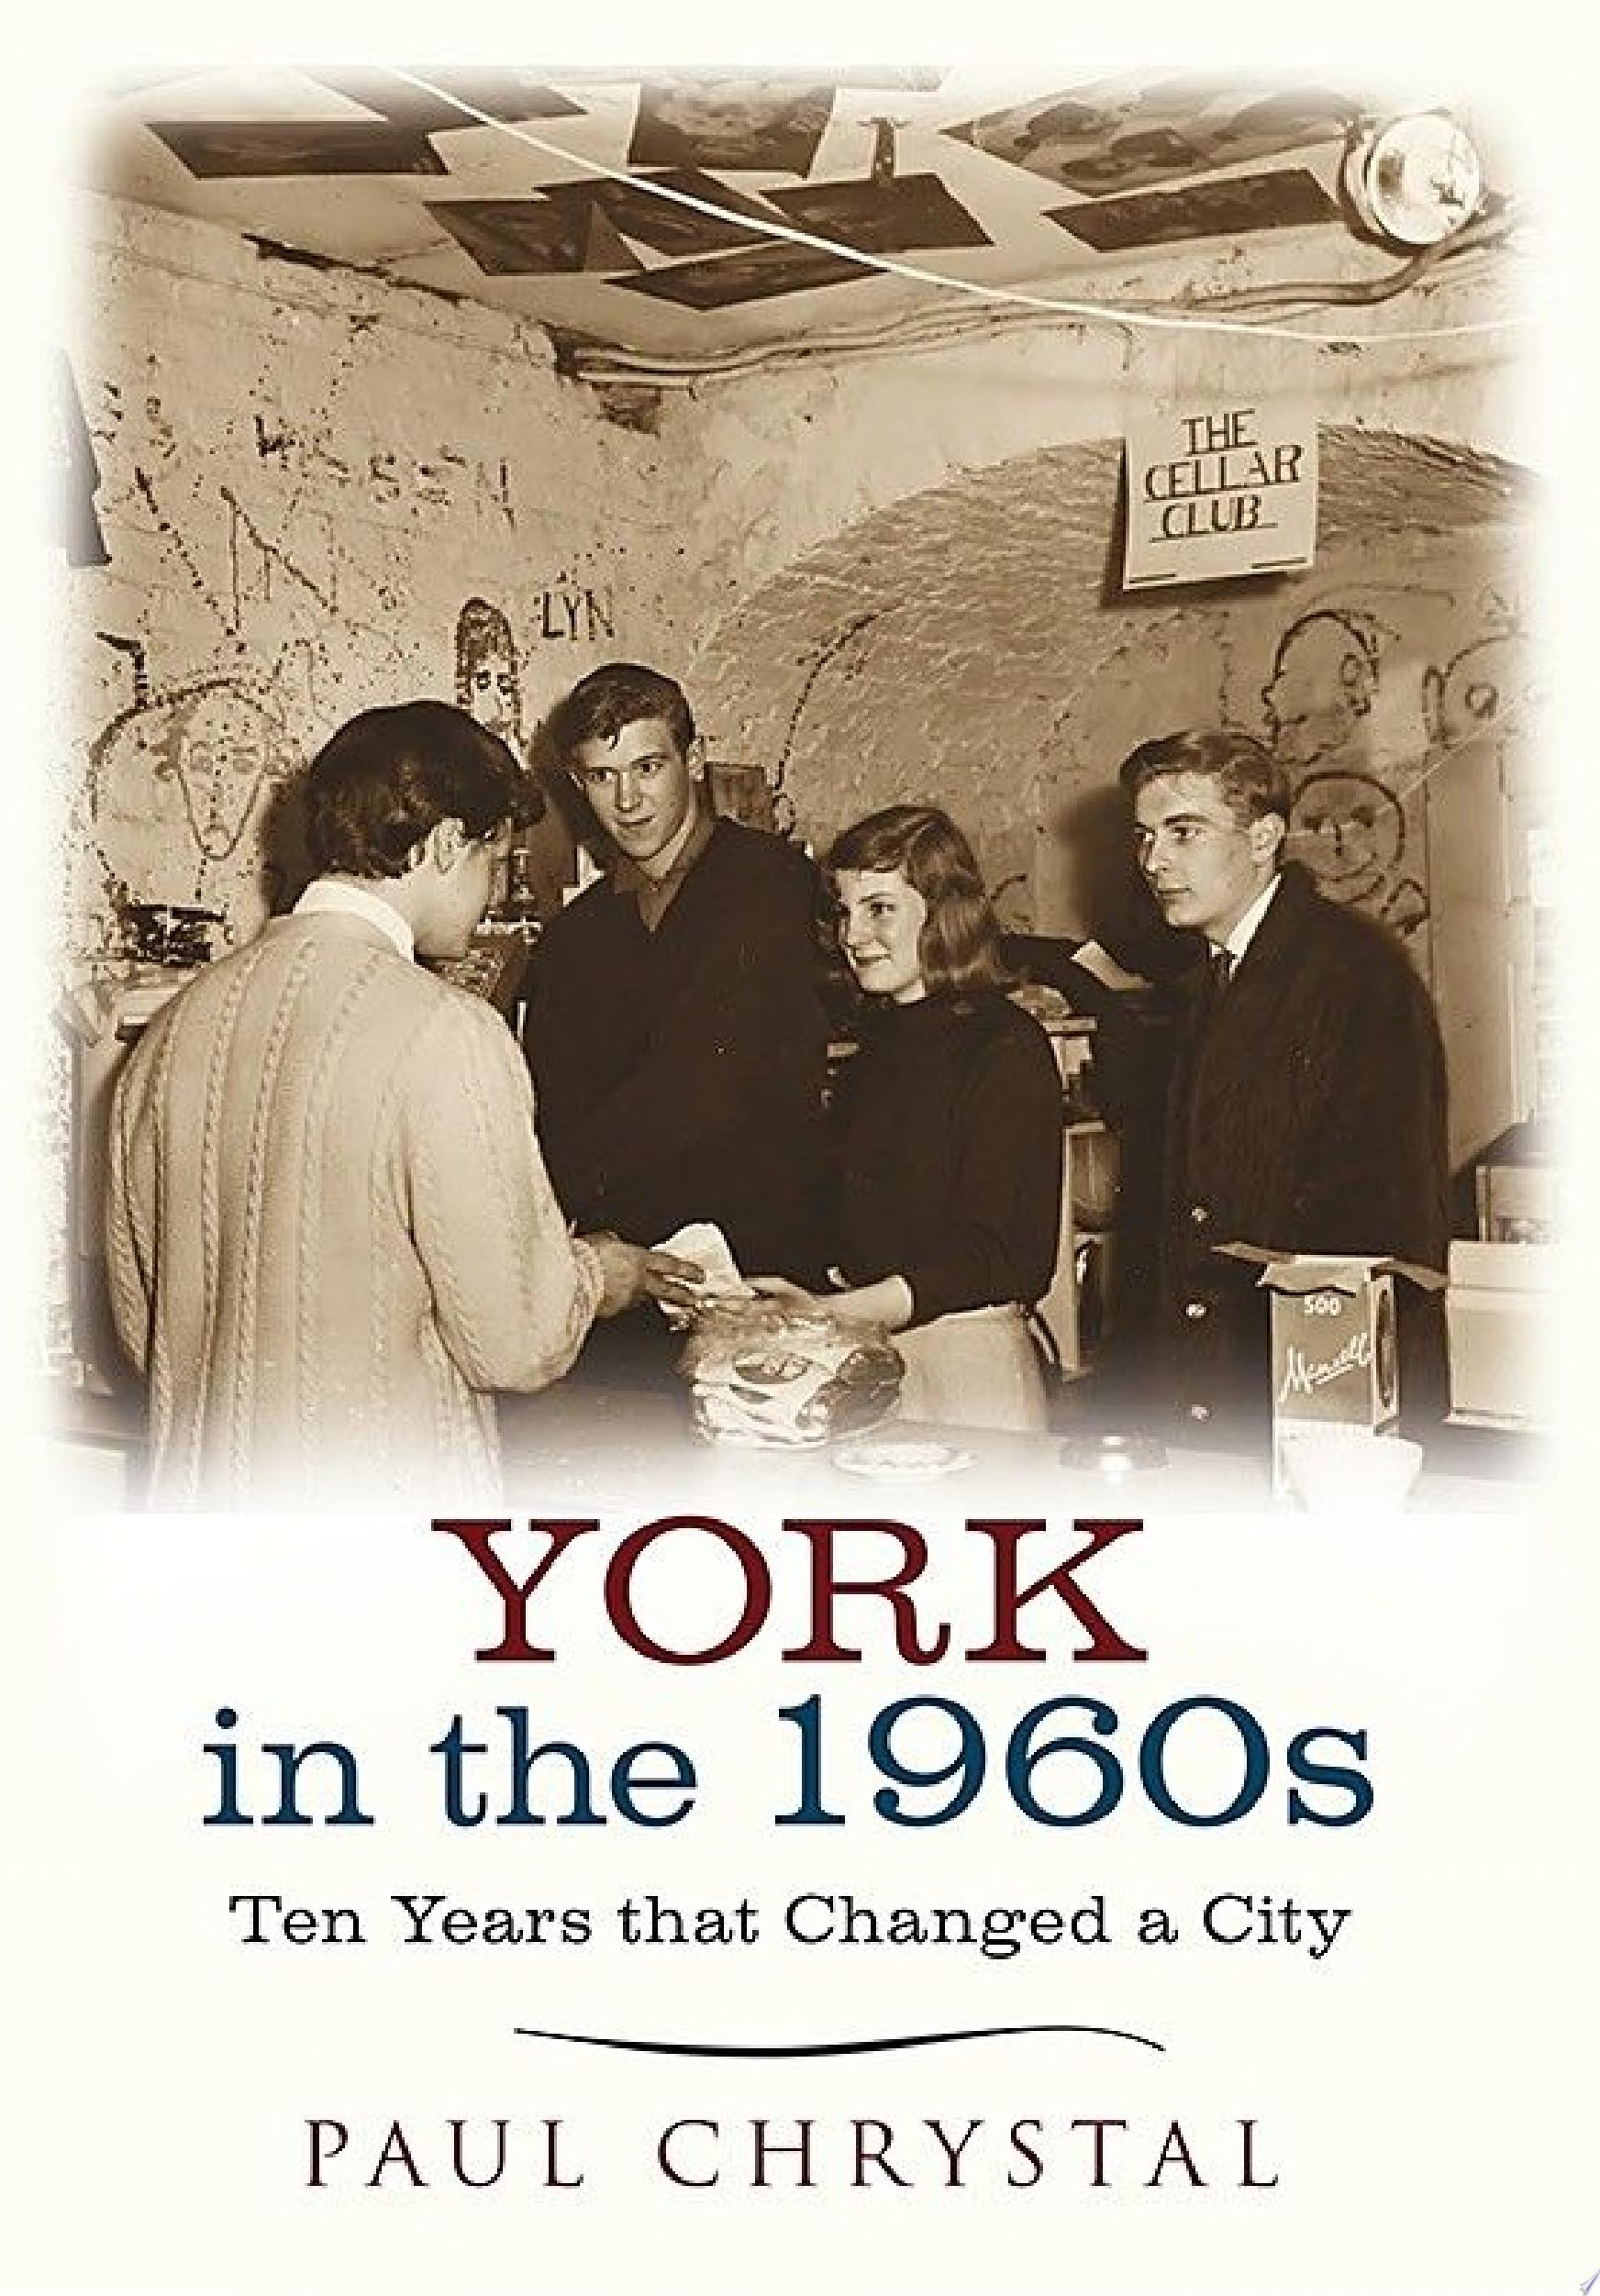 York in the 1960s